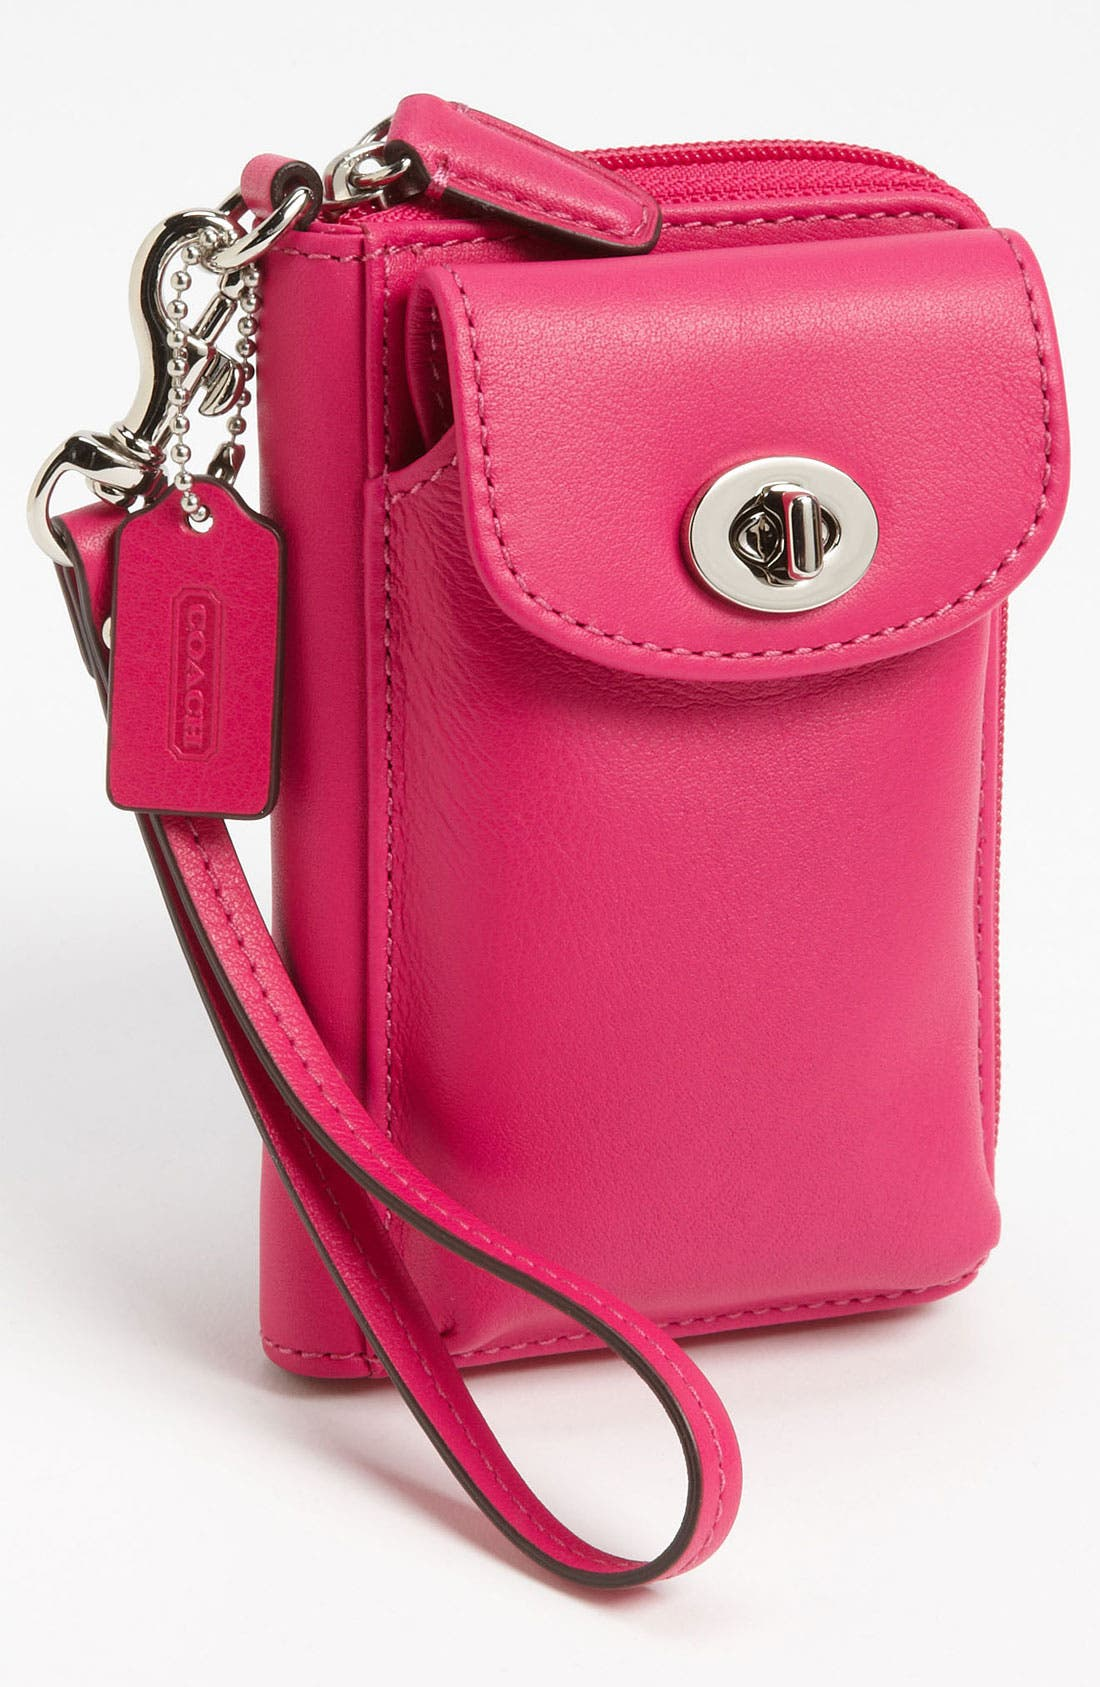 Alternate Image 1 Selected - COACH 'Legacy' Smartphone Wristlet